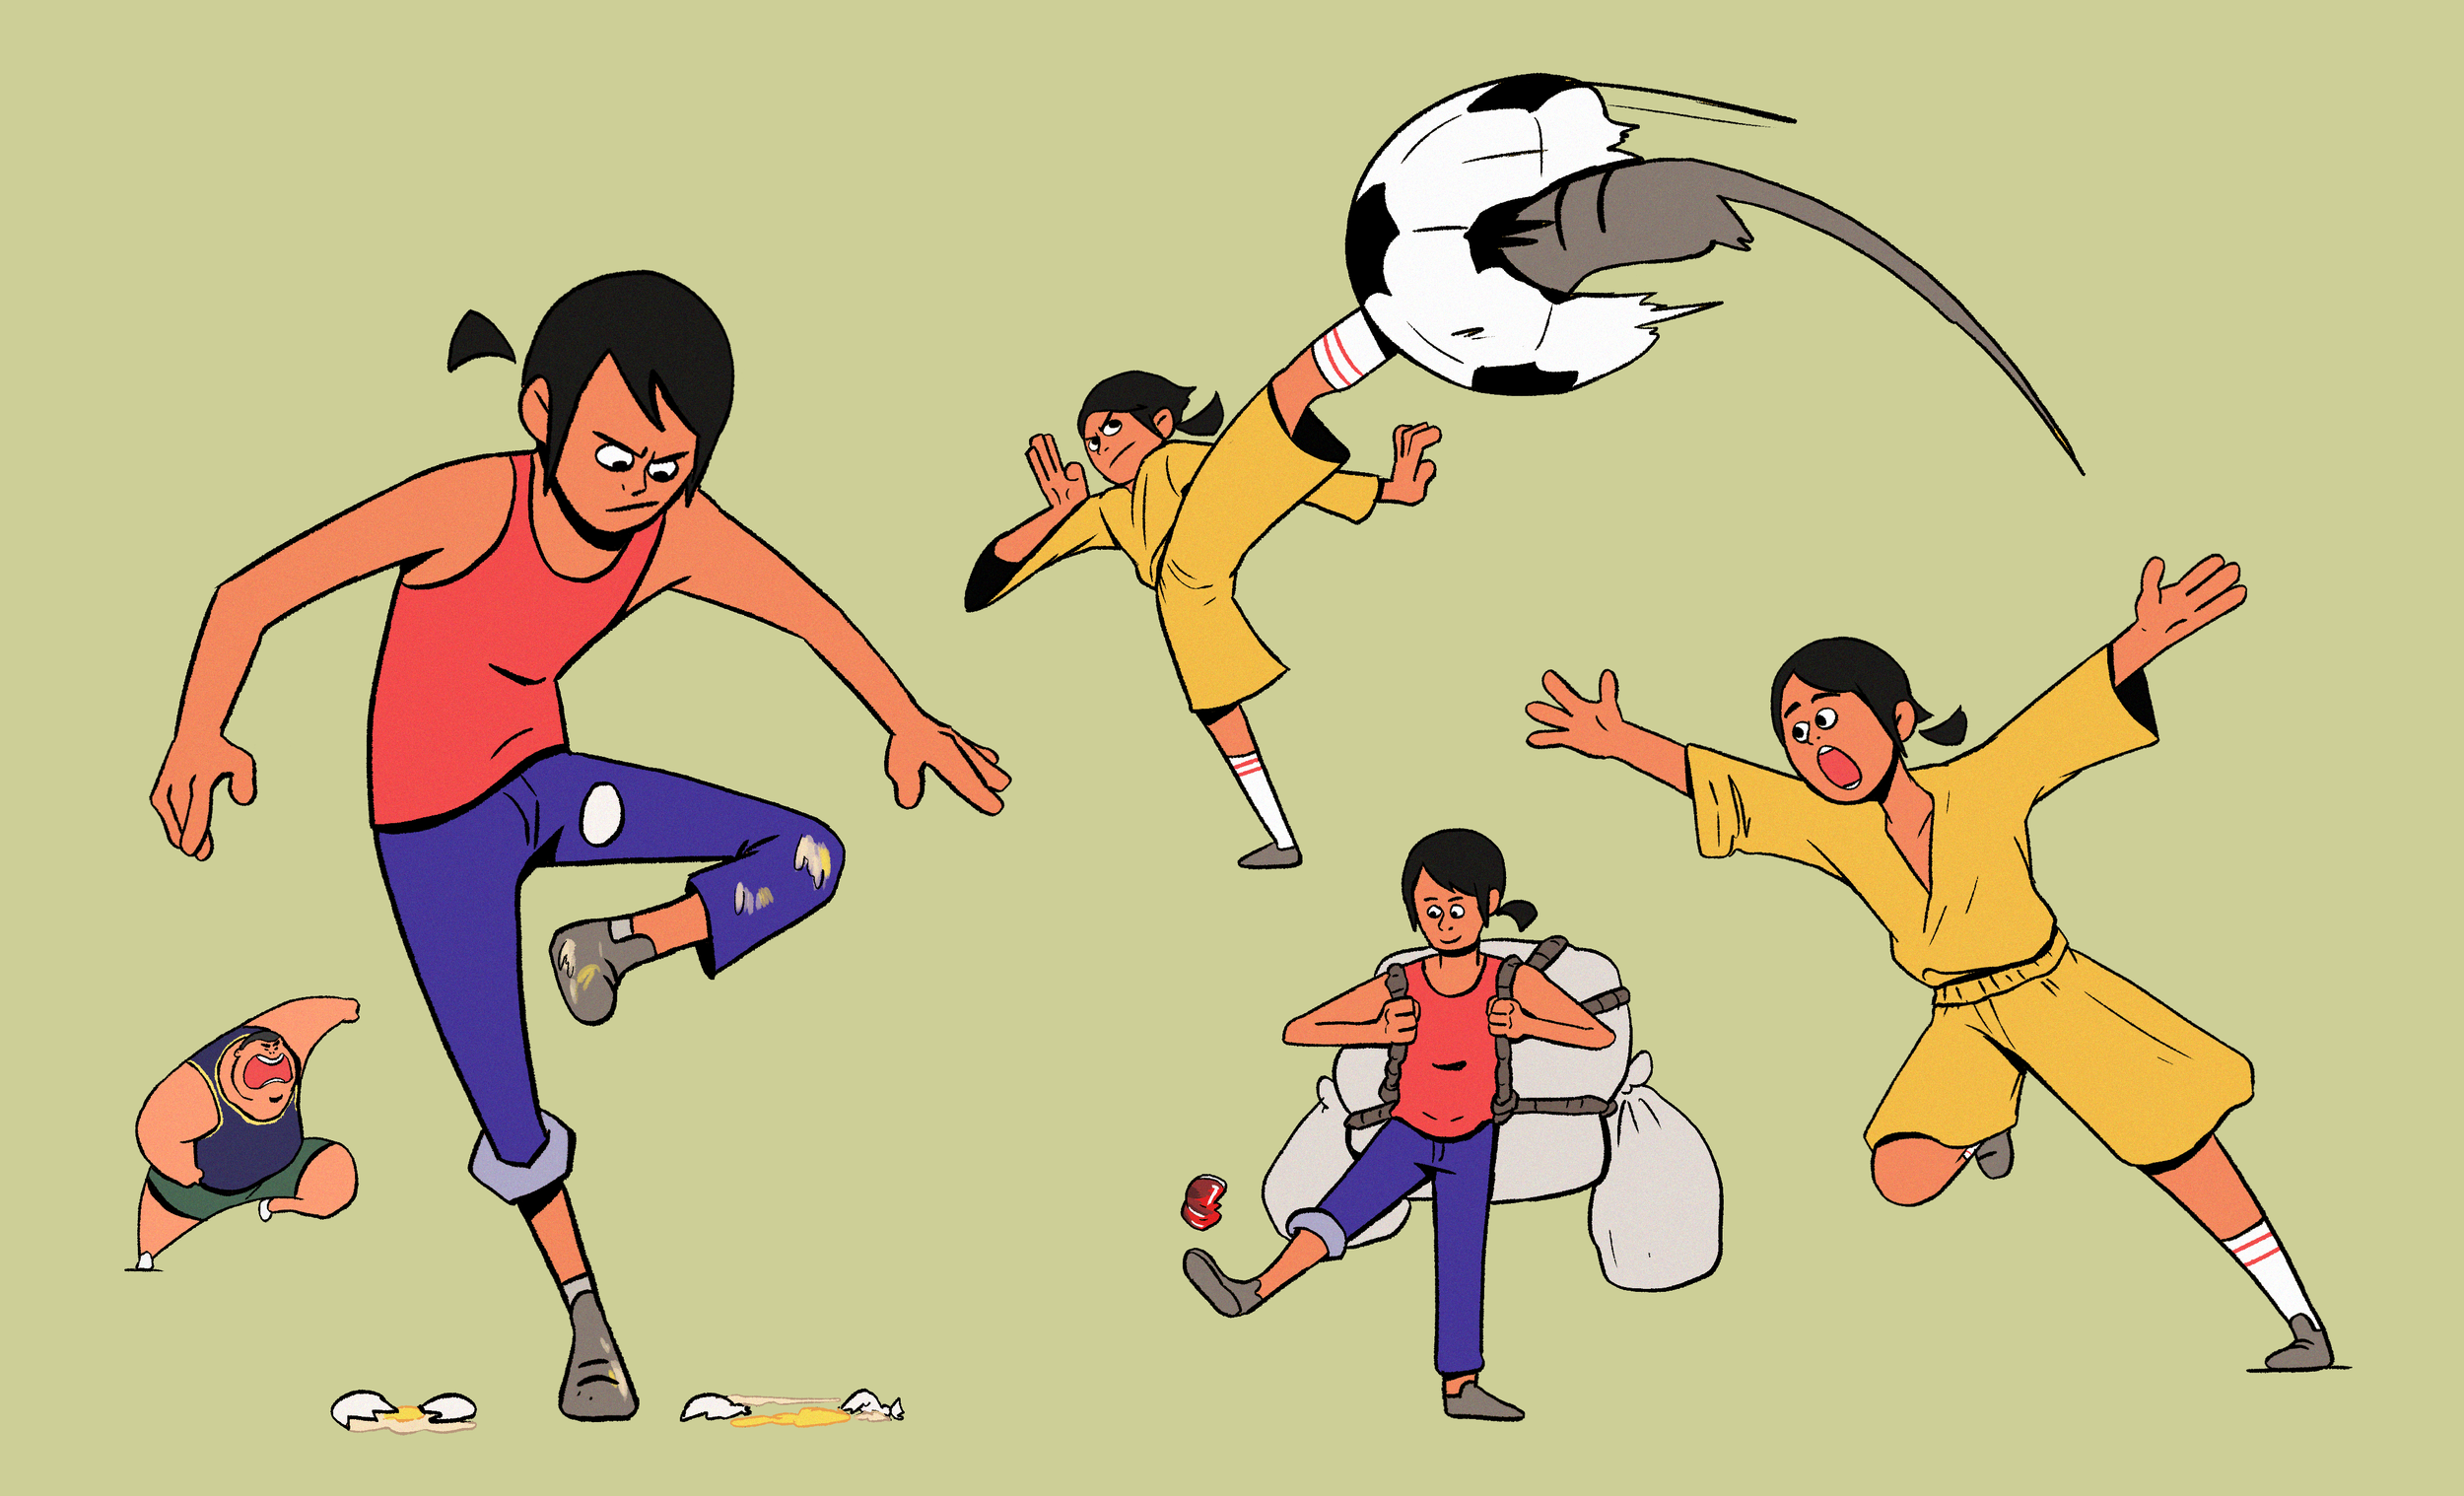 shaoline soccer sing.png